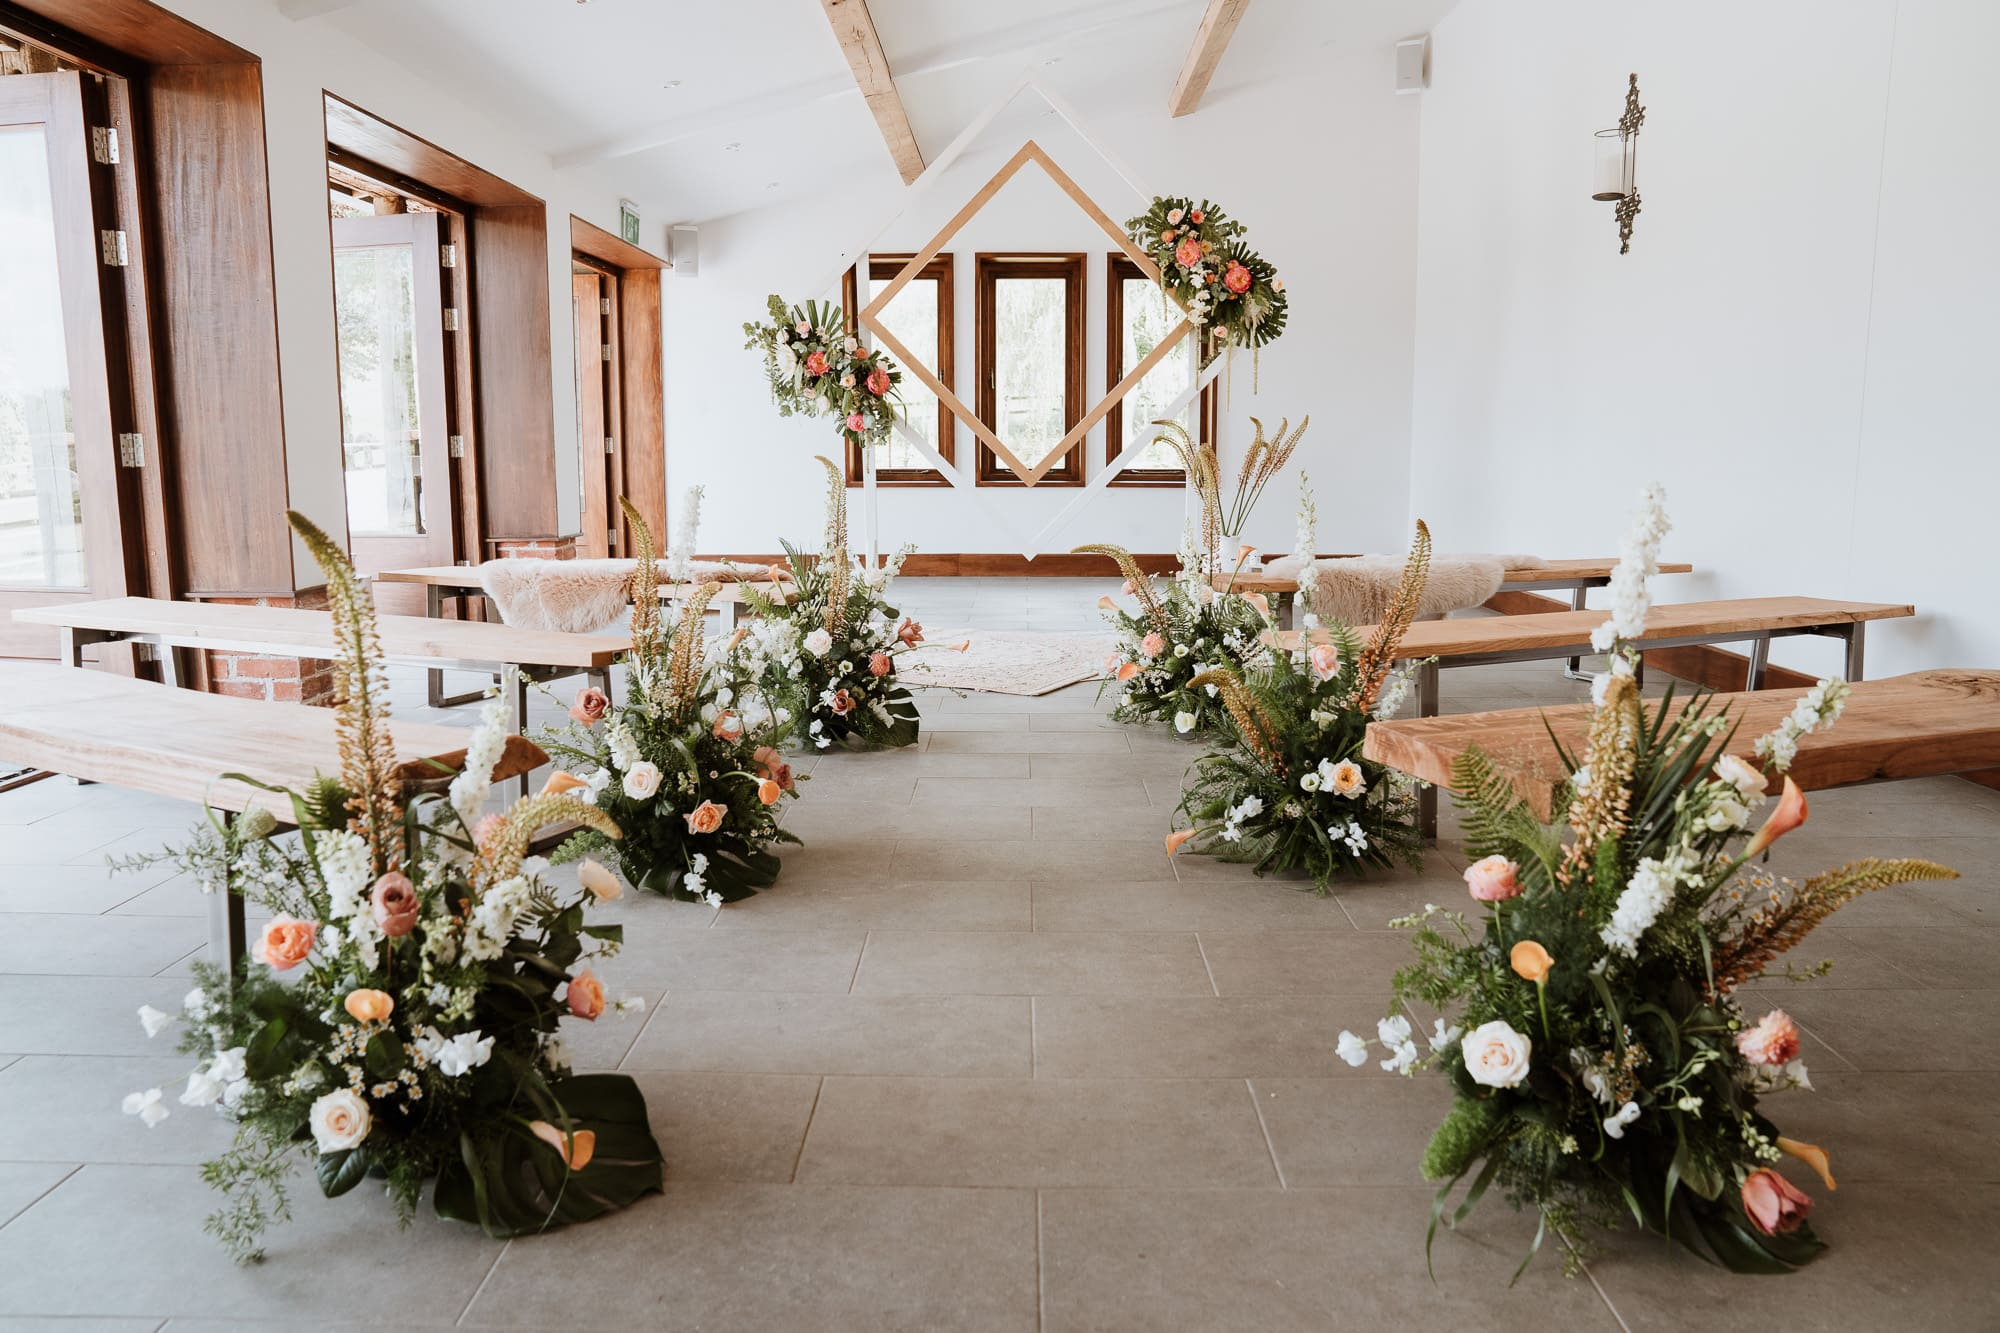 The ceremony area at The Oak Barn dressed for a wedding with stunning florals